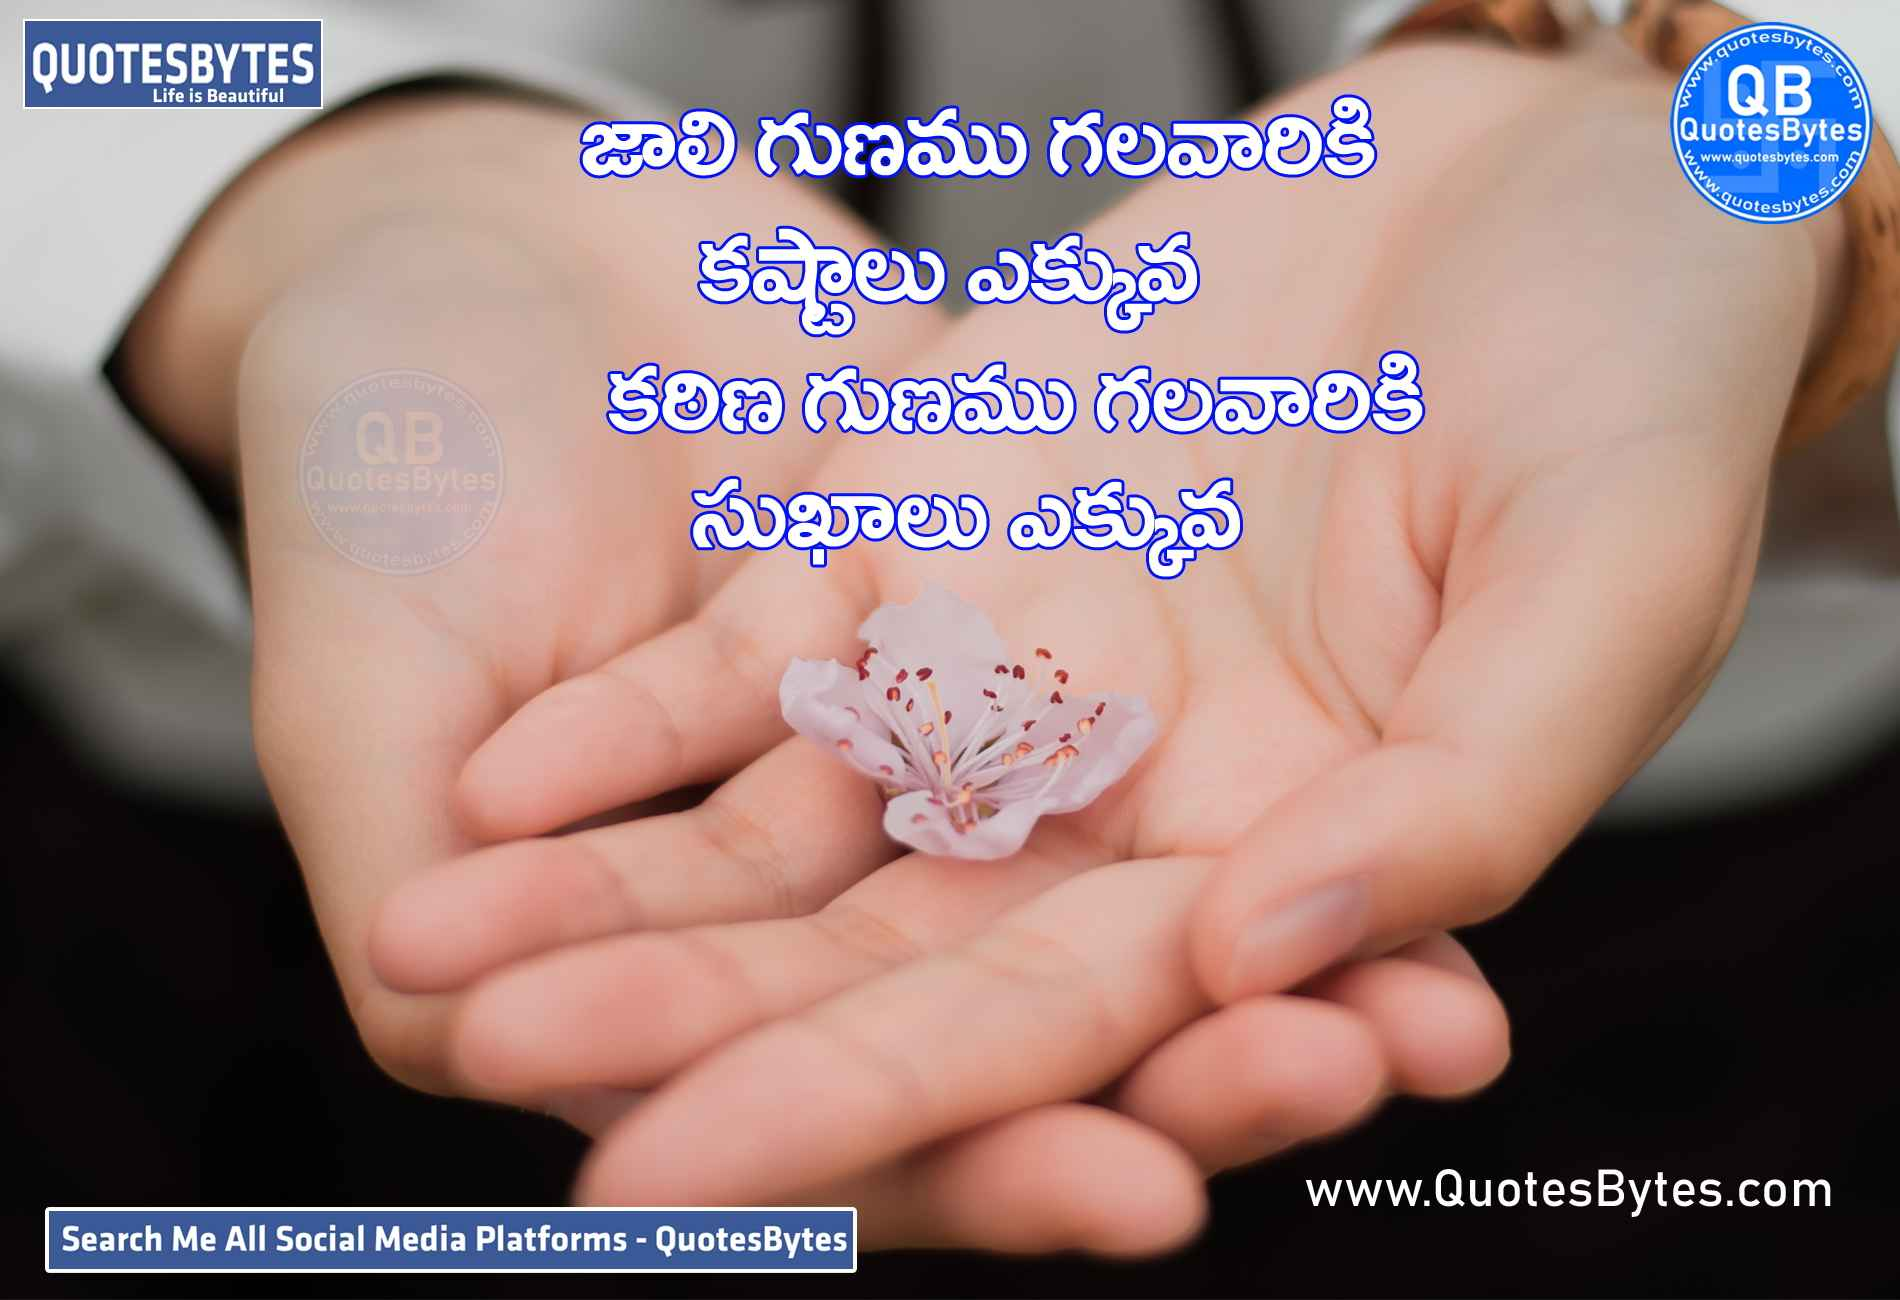 good morning images in telugu-Image of Good Morning Quotes Telugu for friends